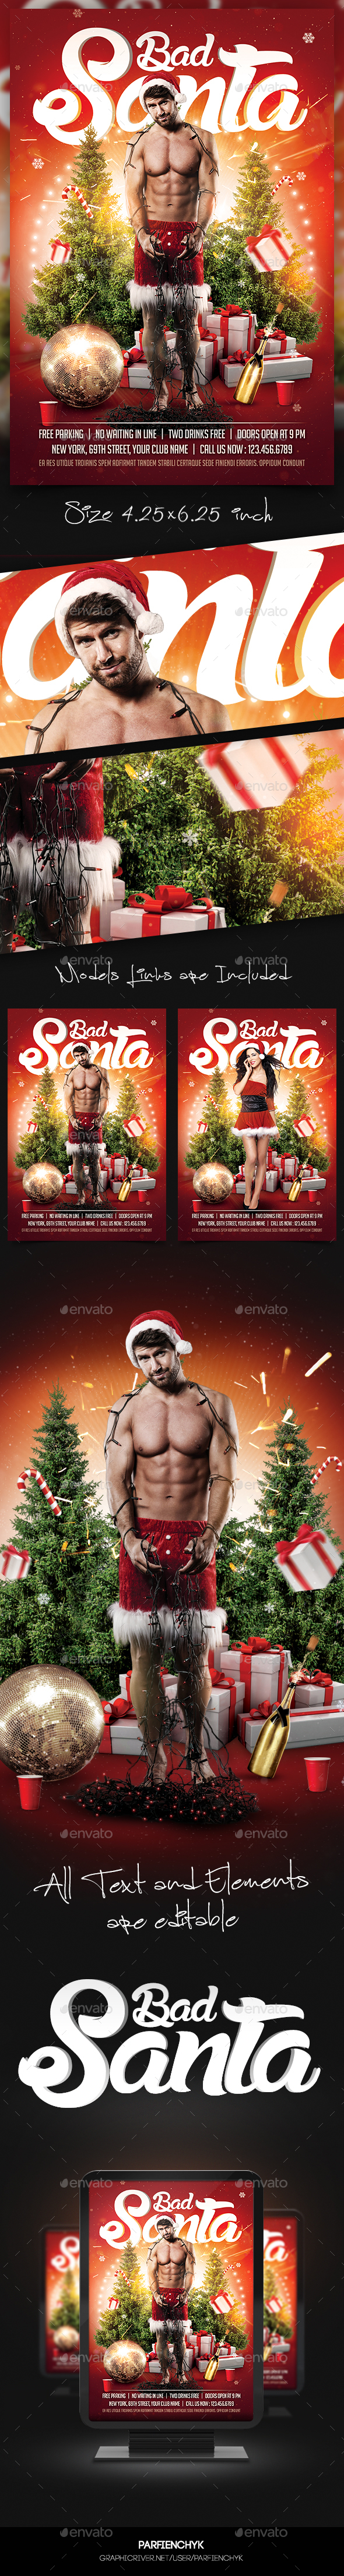 Bad Santa Flyer Template - Clubs & Parties Events